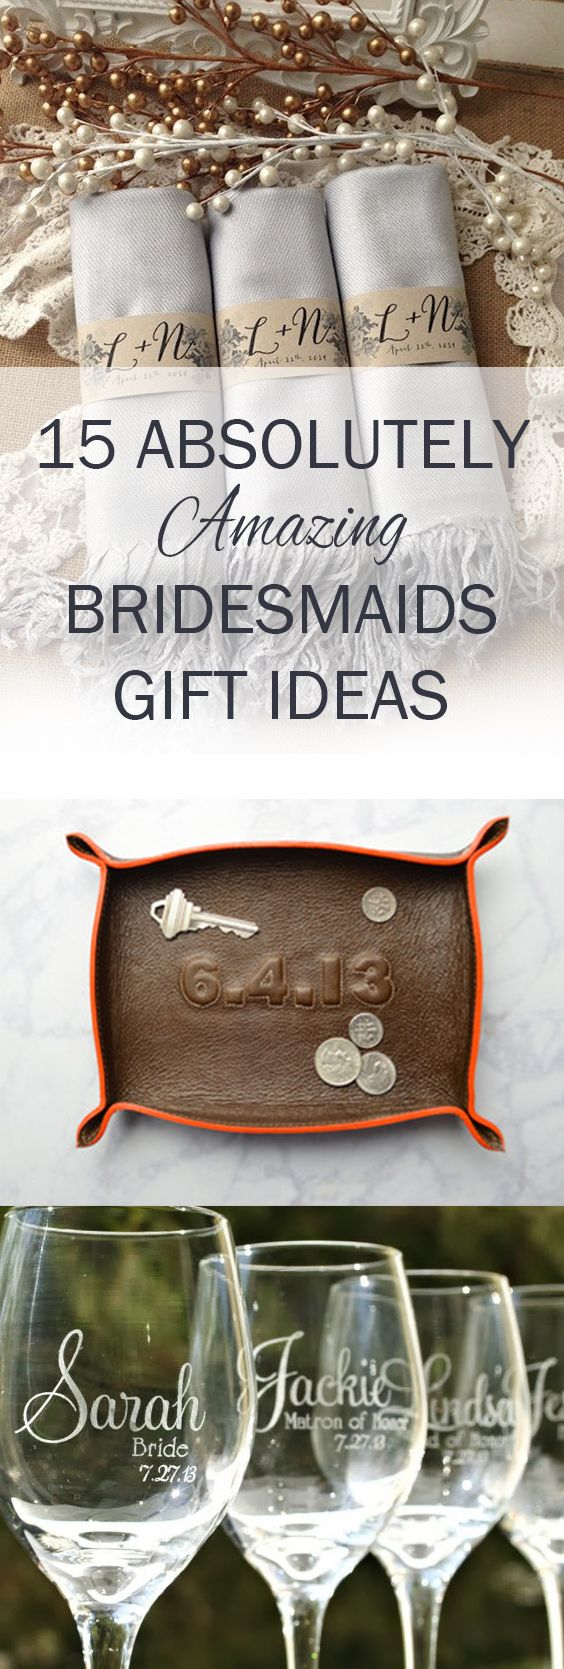 Bridesmaids, Bridesmaids Gifts, Gifts For Her, Gift Ideas, Popular Pin, Wedding Gifts, Wedding DIYs, Dream Wedding, Wedding Planning